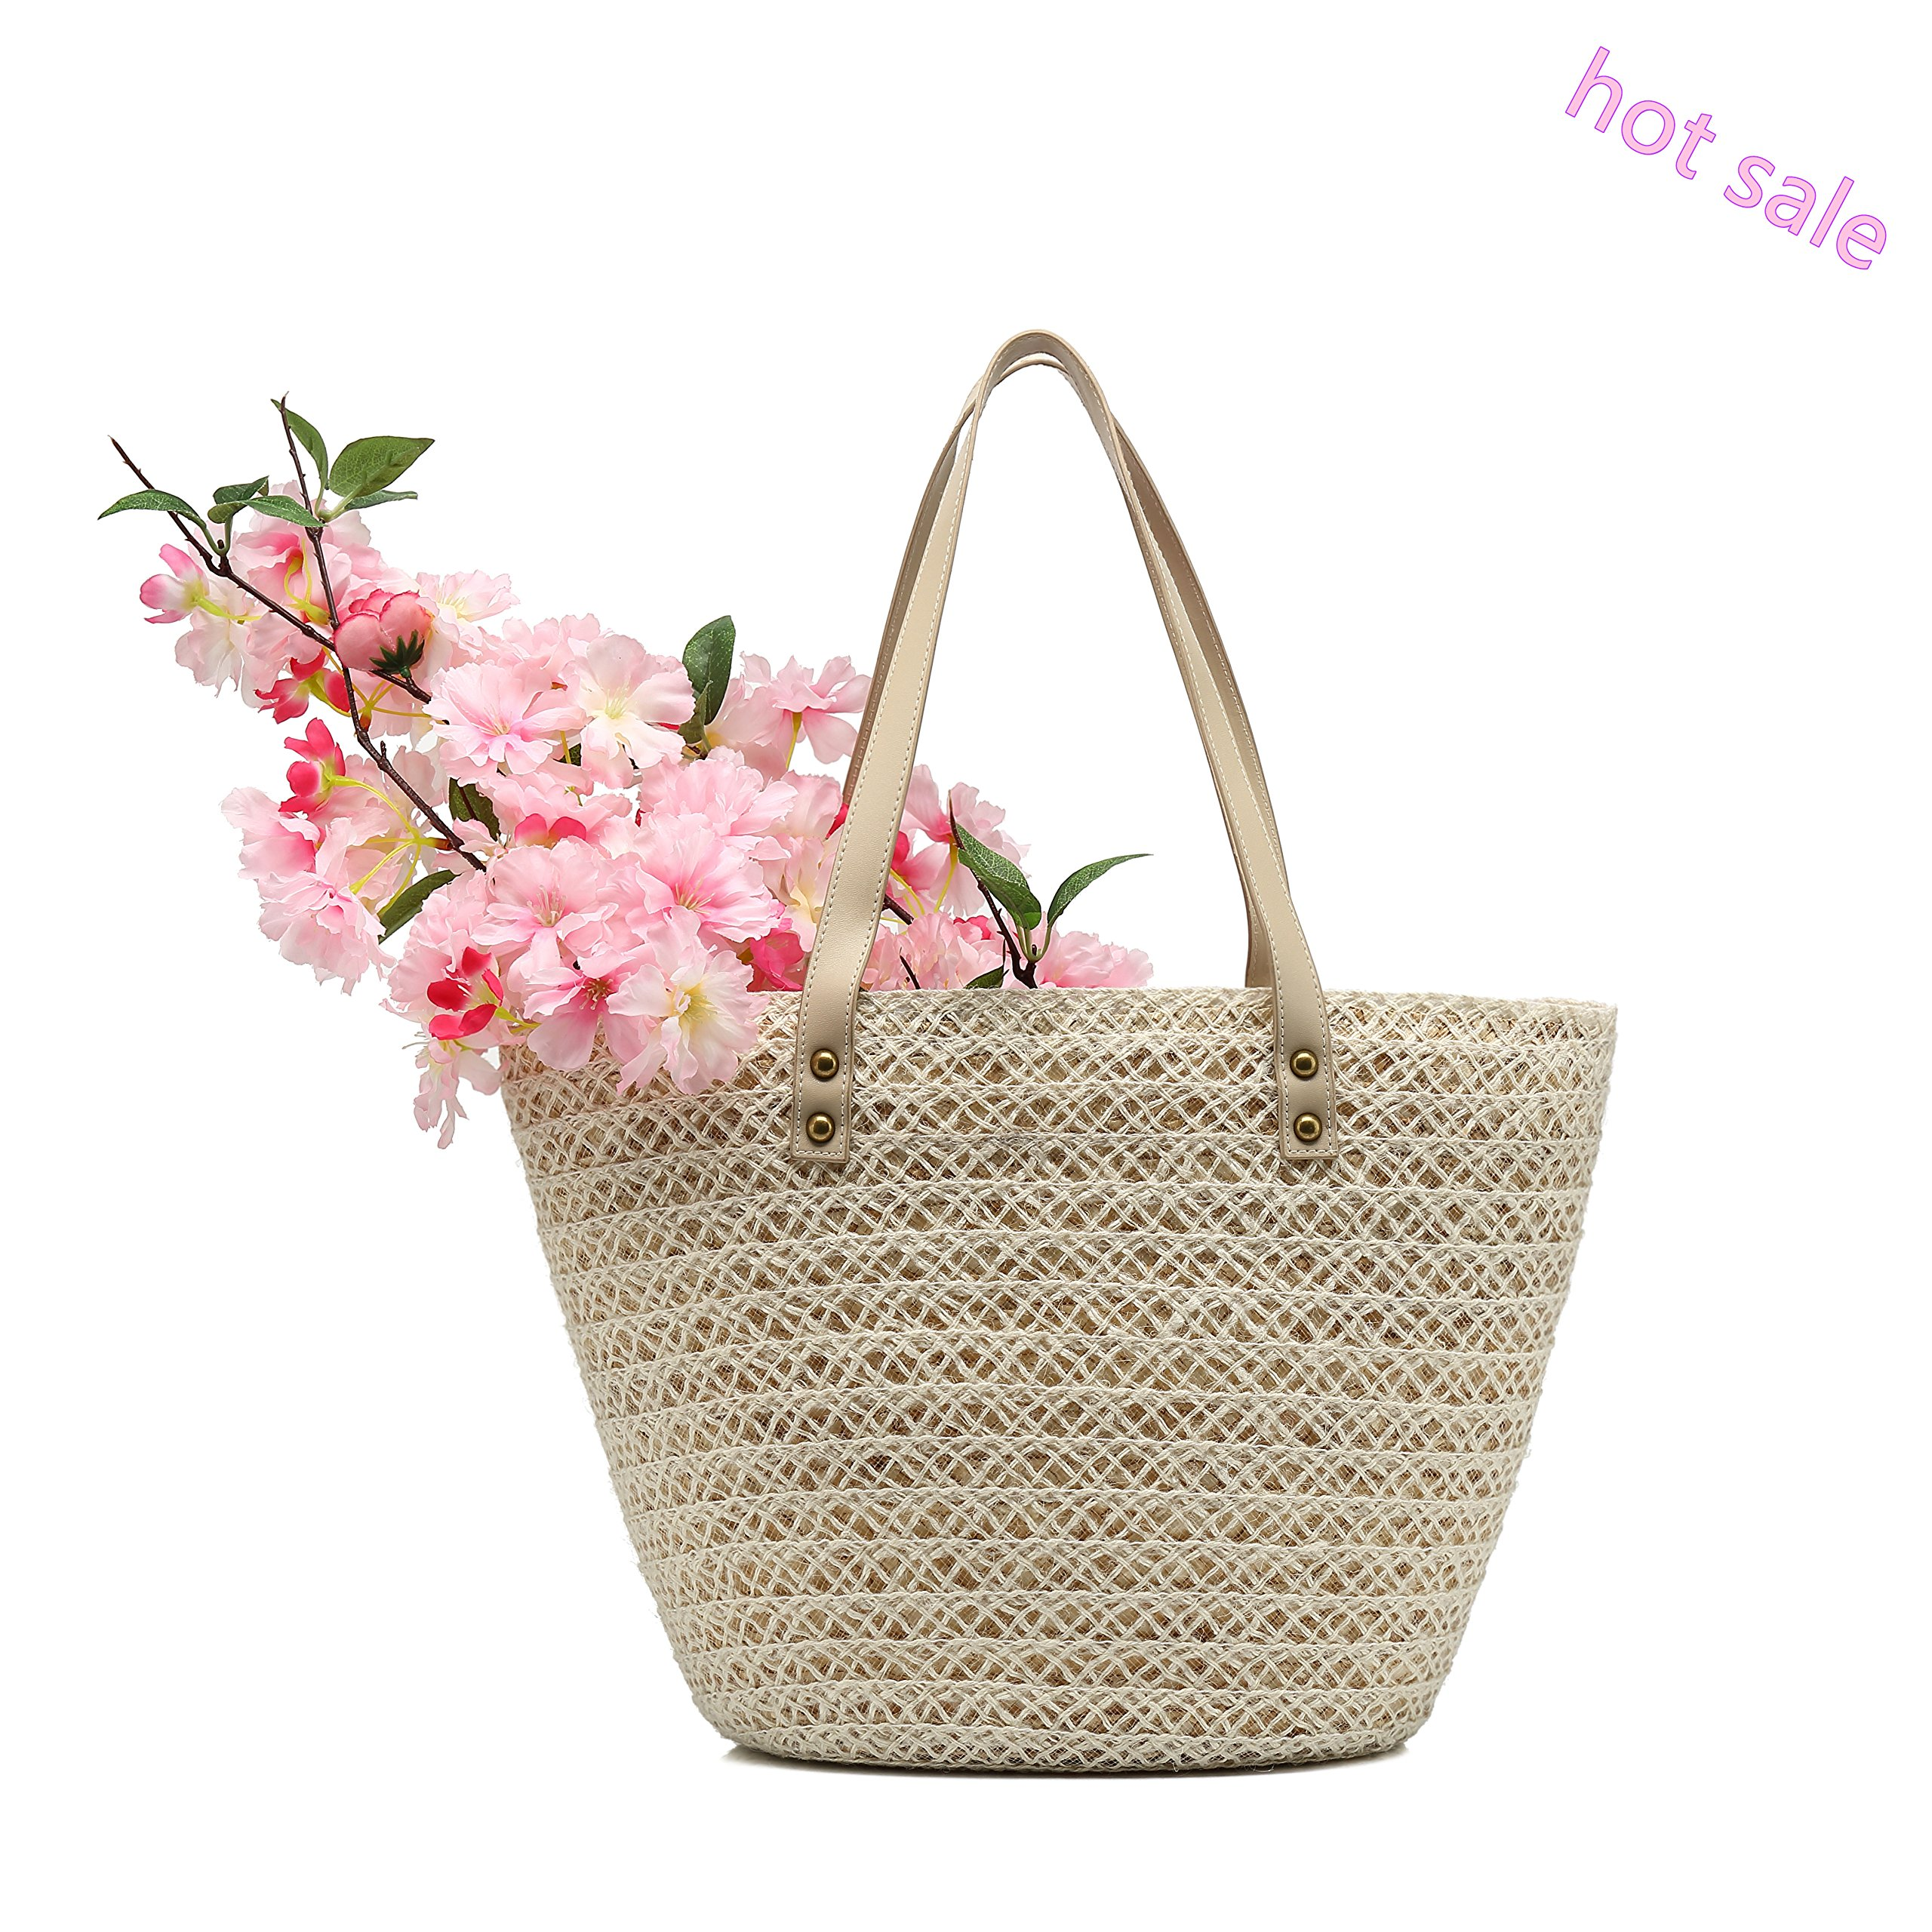 Luolin Summer Straw Bags Beach Bags Weave Handbags Tote with Zipper for Women Birthday Gift